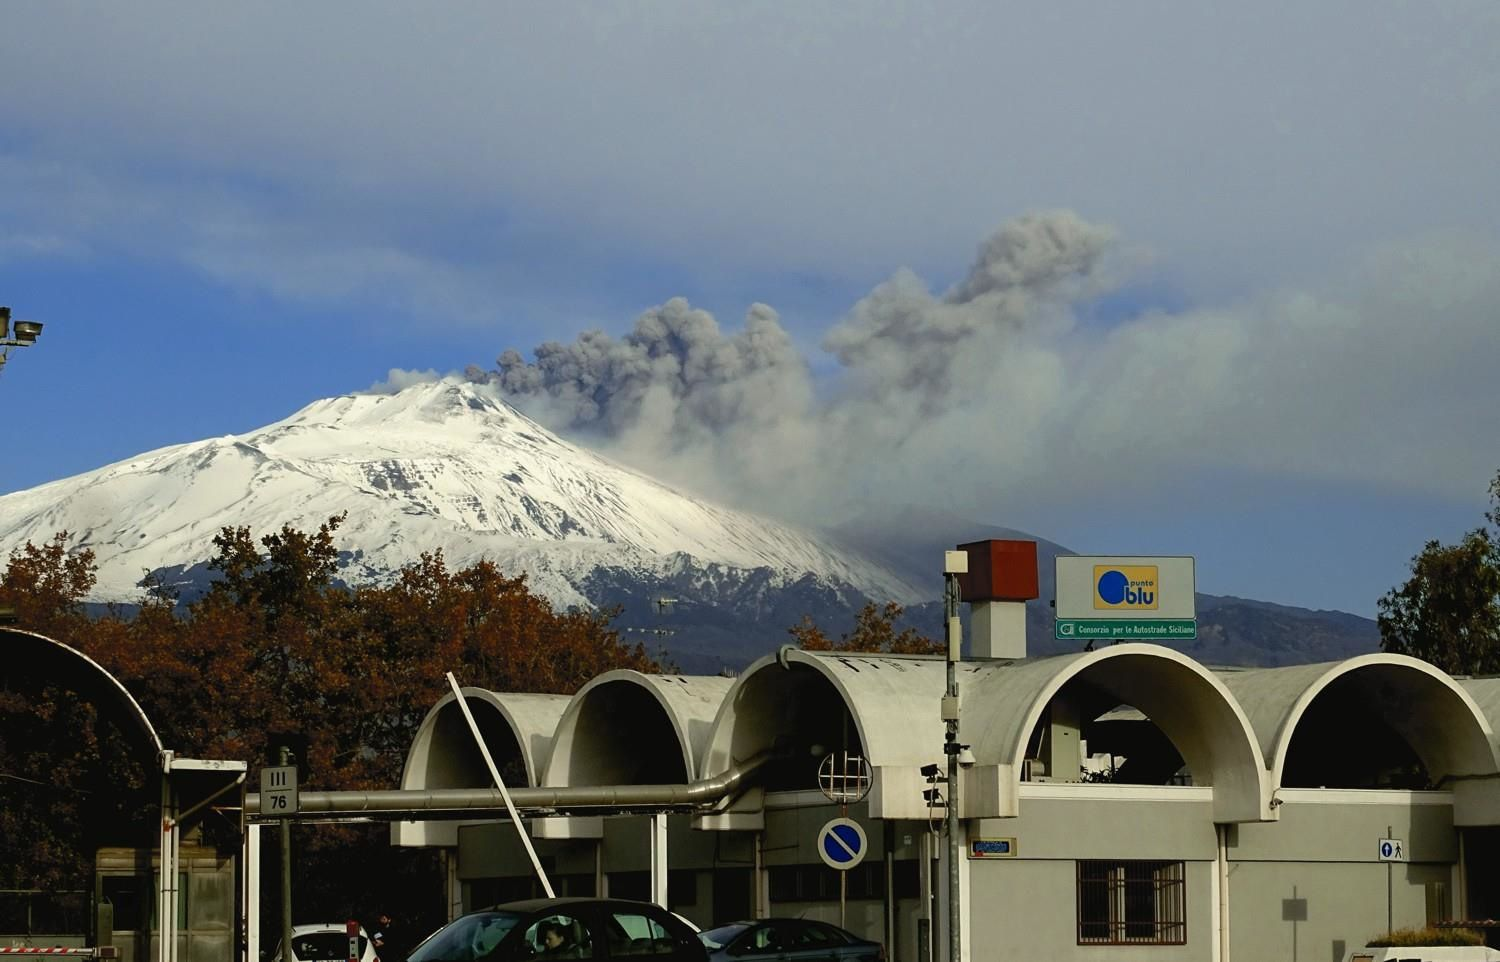 Etna - ash emissions continue - photo Boris Behncke 23.01.2019